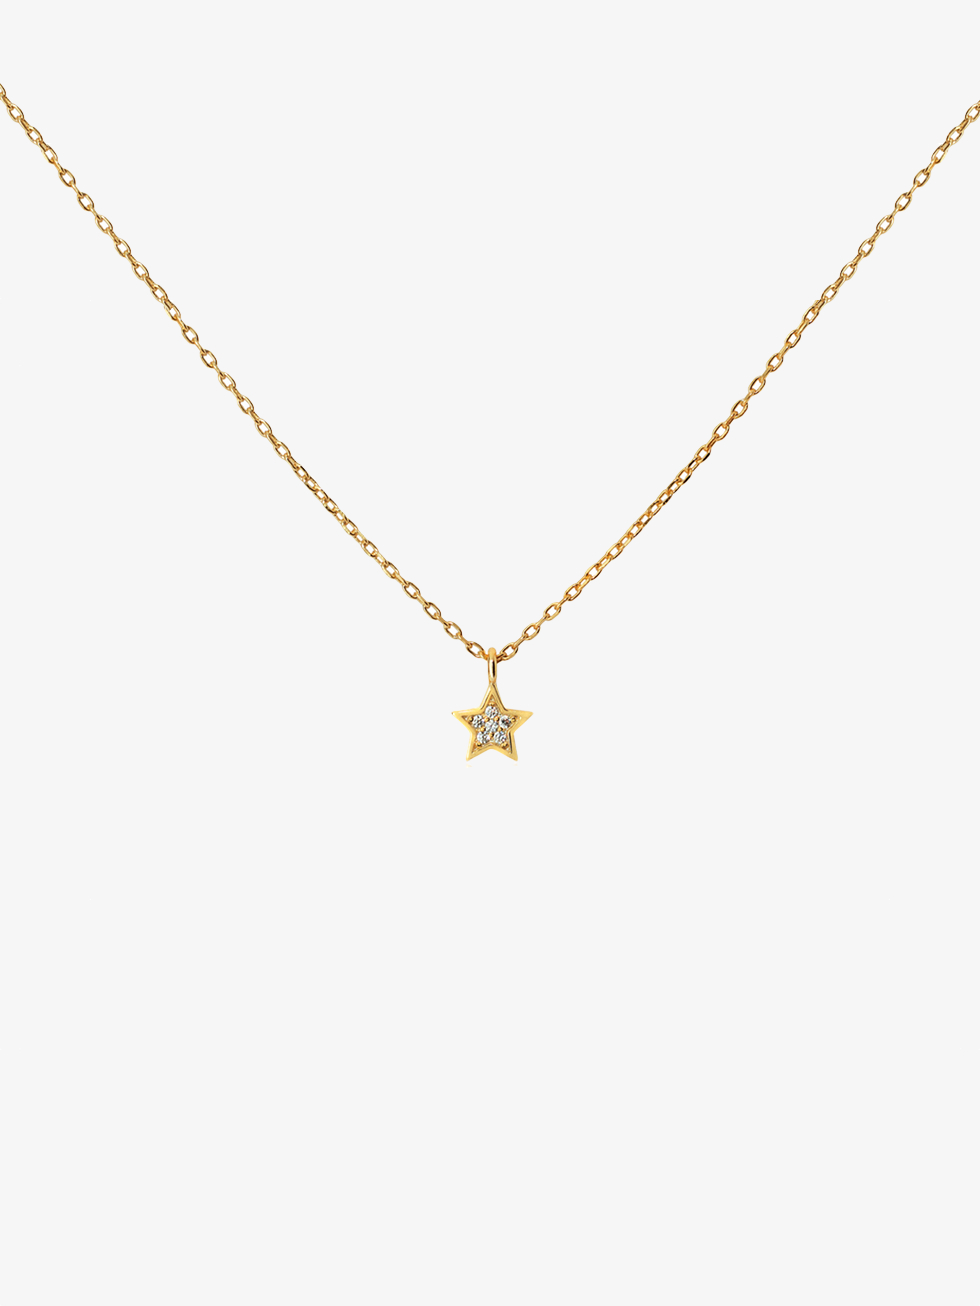 STARz GLD necklace